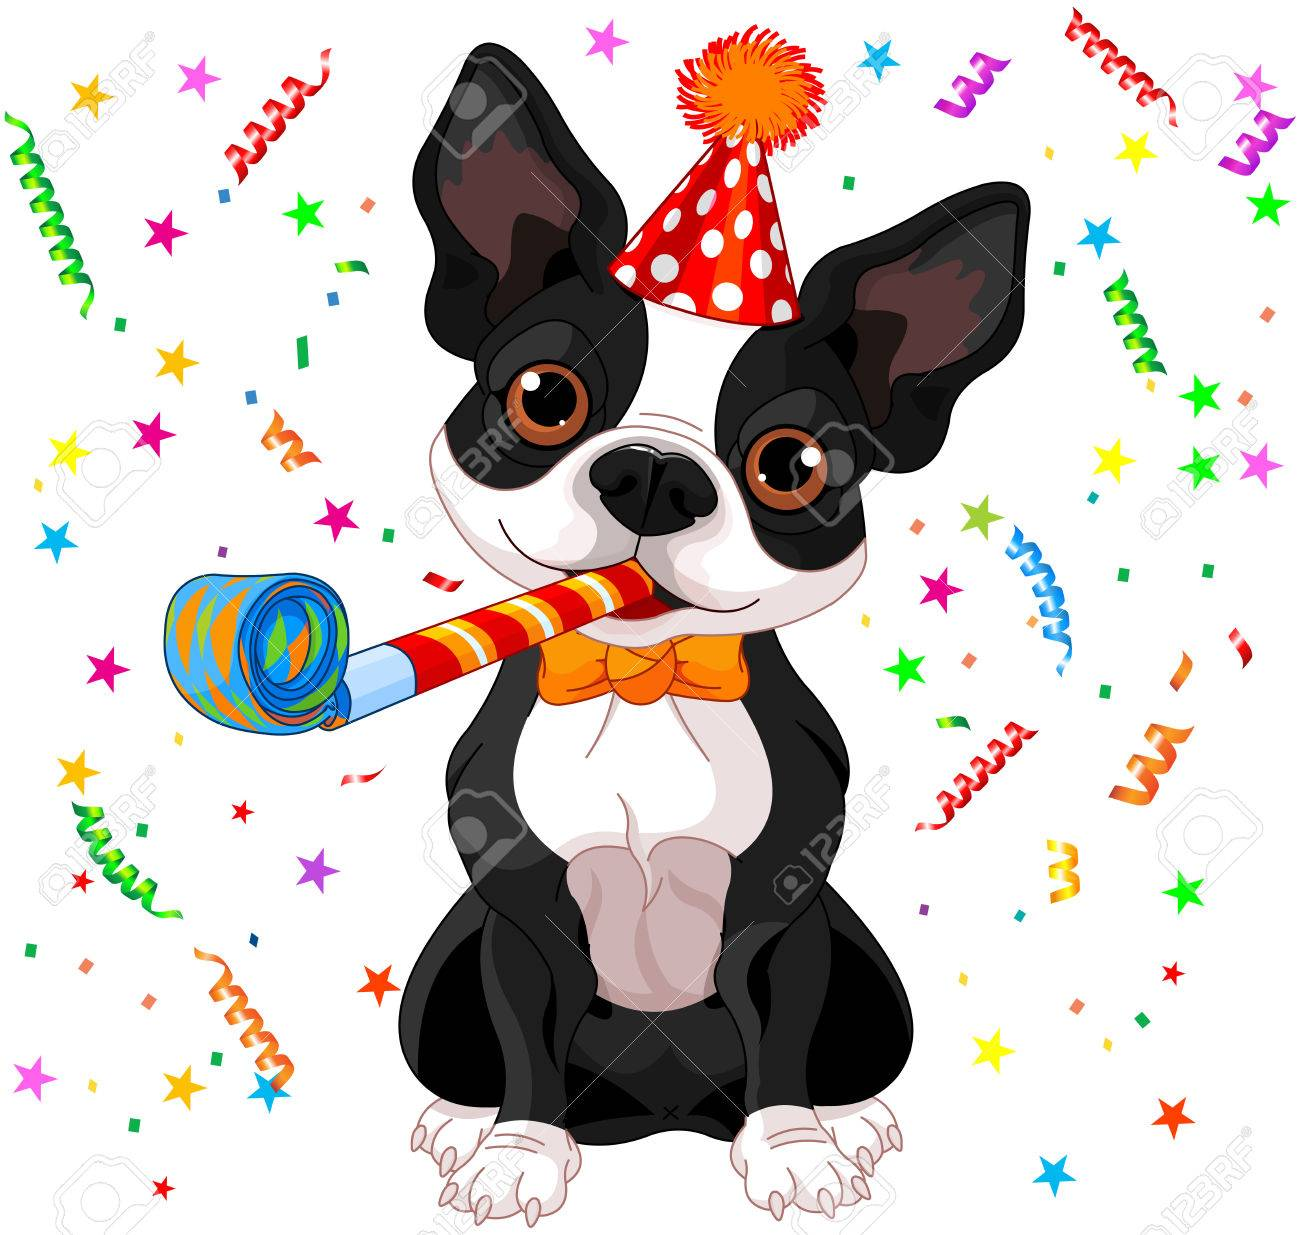 Livre: La Méthode Tellington-TTouch de Linda Tellington-Jones - Page 3 35588778-illustration-of-cute-boston-terrier-celebrating